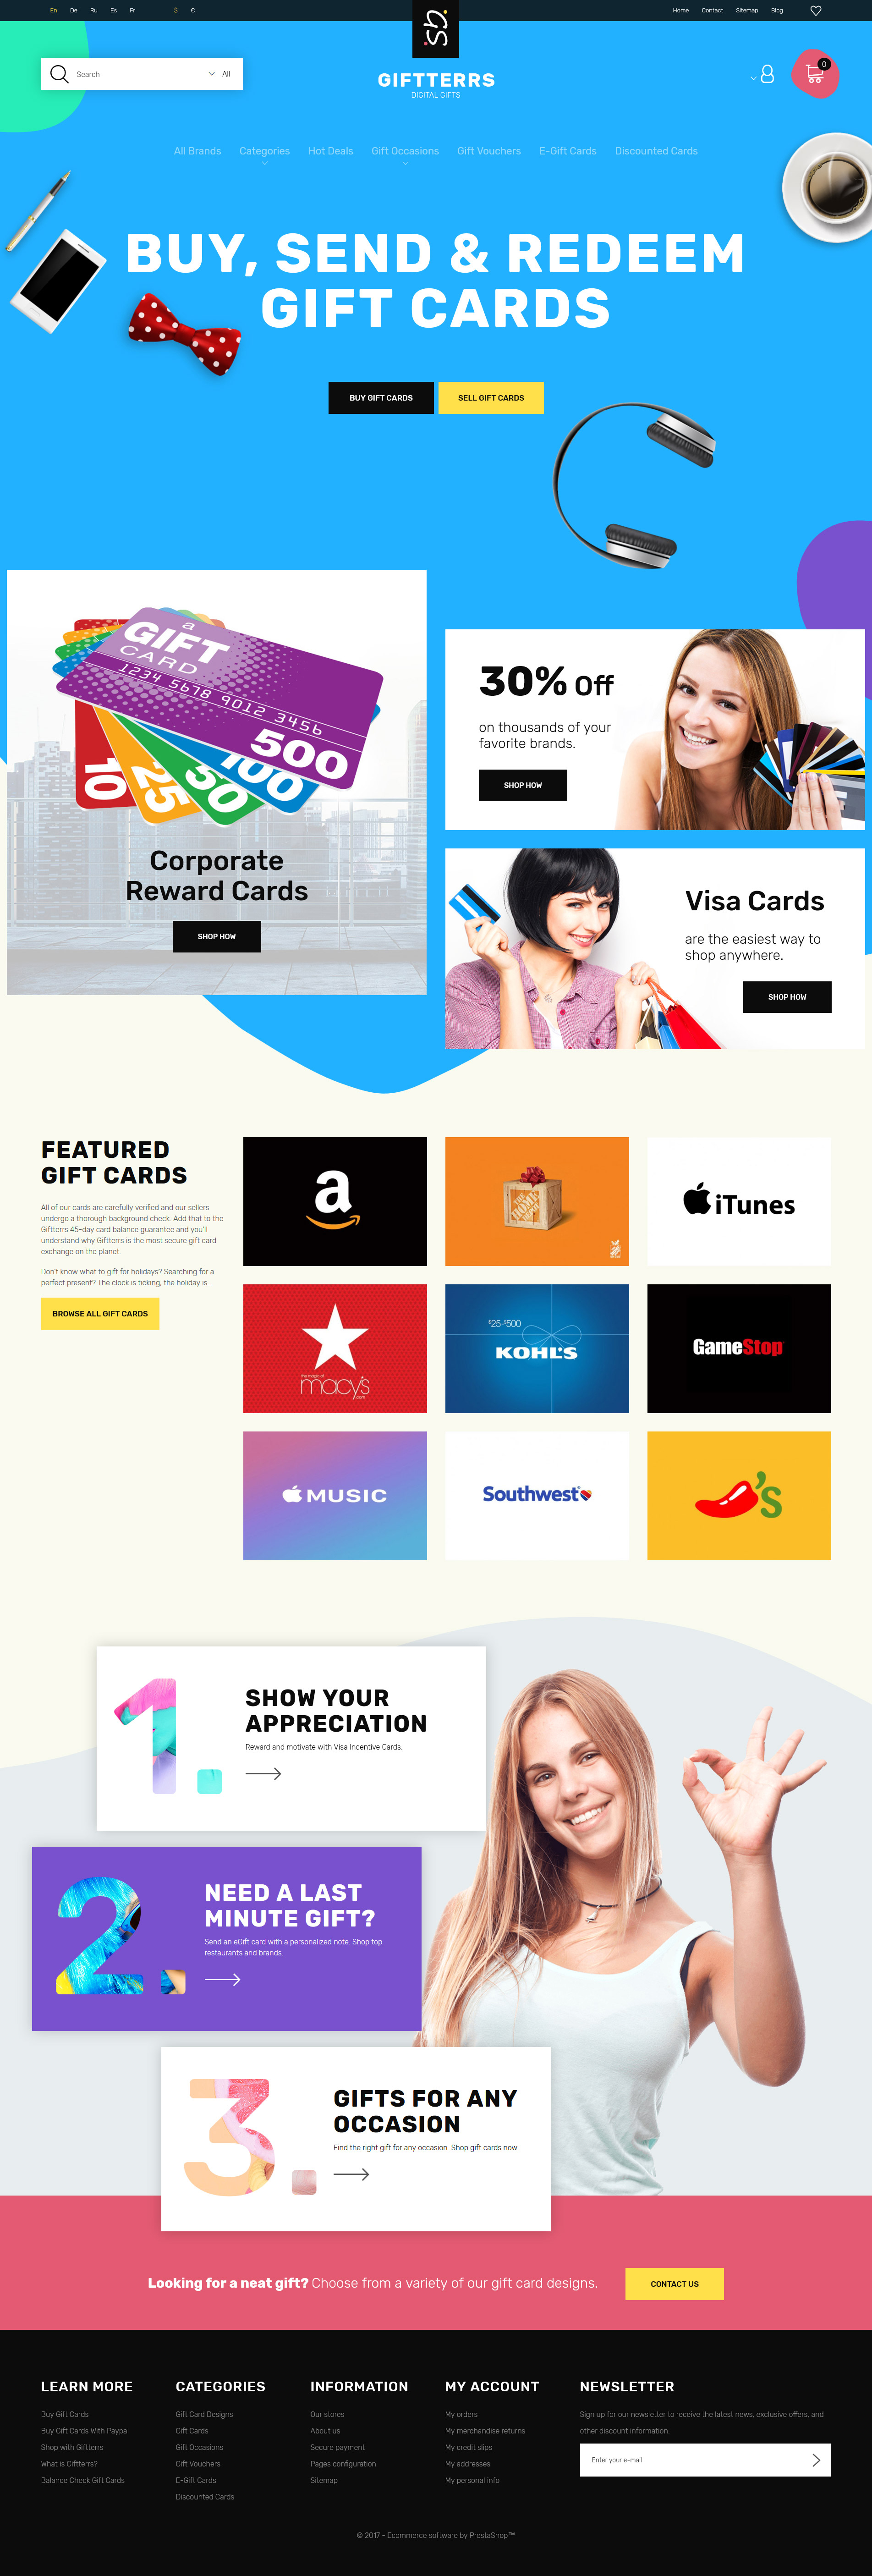 Giftterrs - Gift Cards for Any Purpose №63340